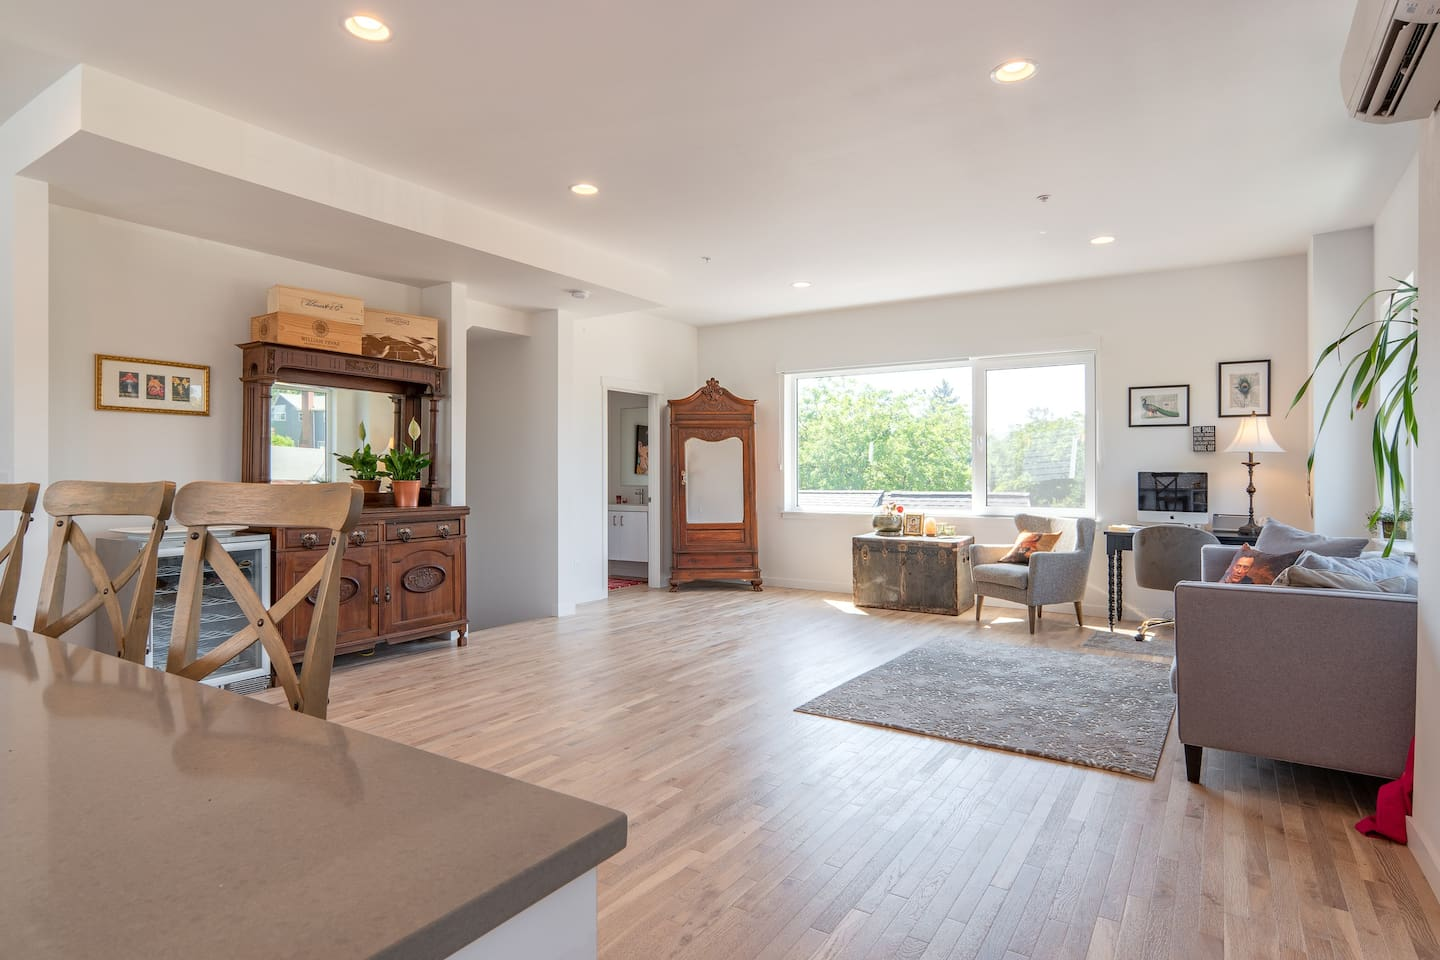 Third floor great room with views and ample room for yoga or dancing